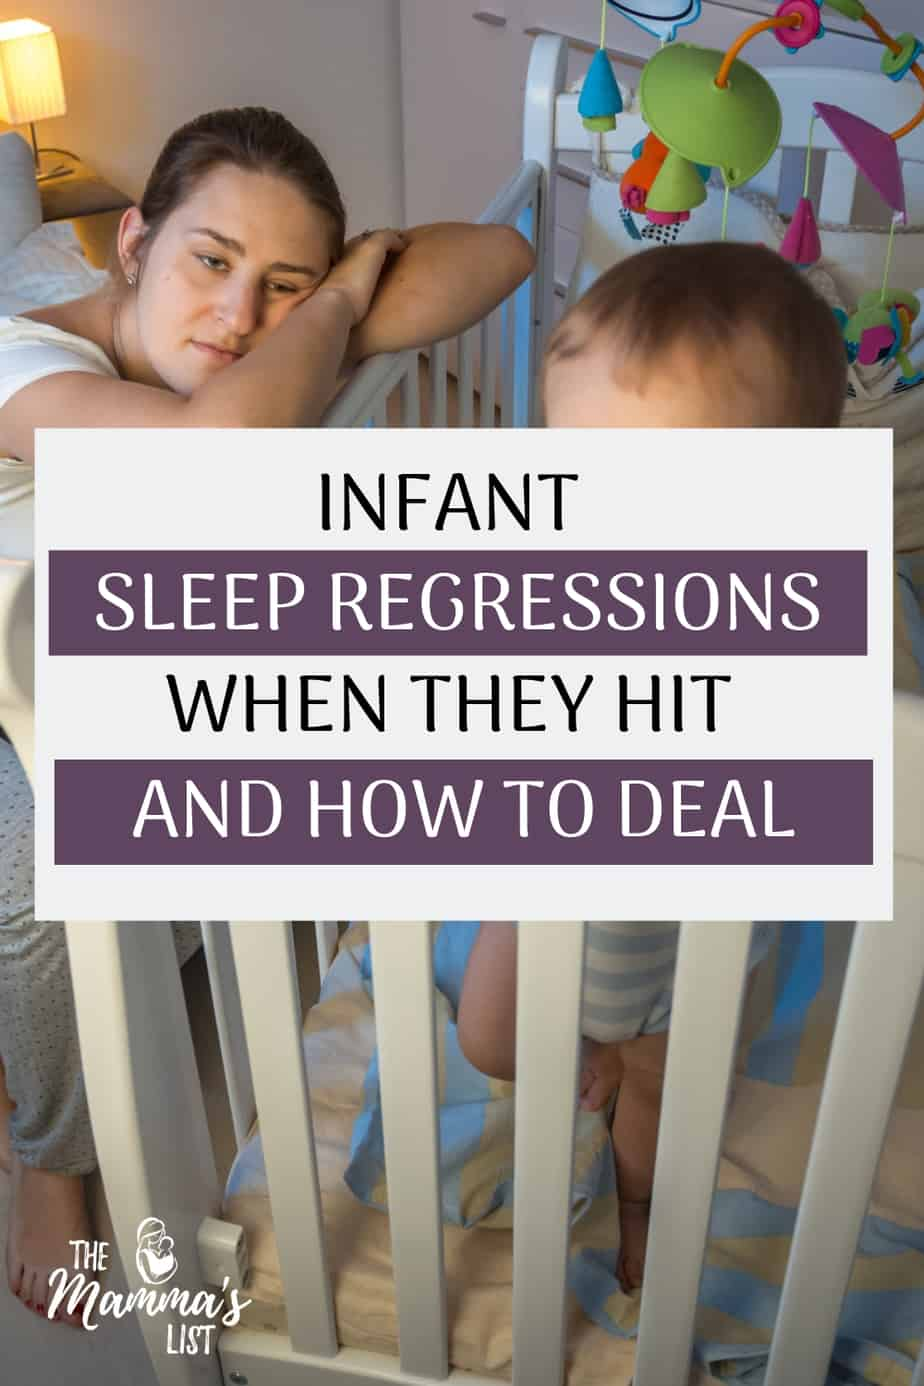 Infant sleep regressions are a terrifying thought for sleep-deprived parents. Check out what happens, when you can expect them, and how to deal. The phases of infant sleep are tricky, and sleep regressions are no joke. Find out the best strategies to cope and finally get more sleep.